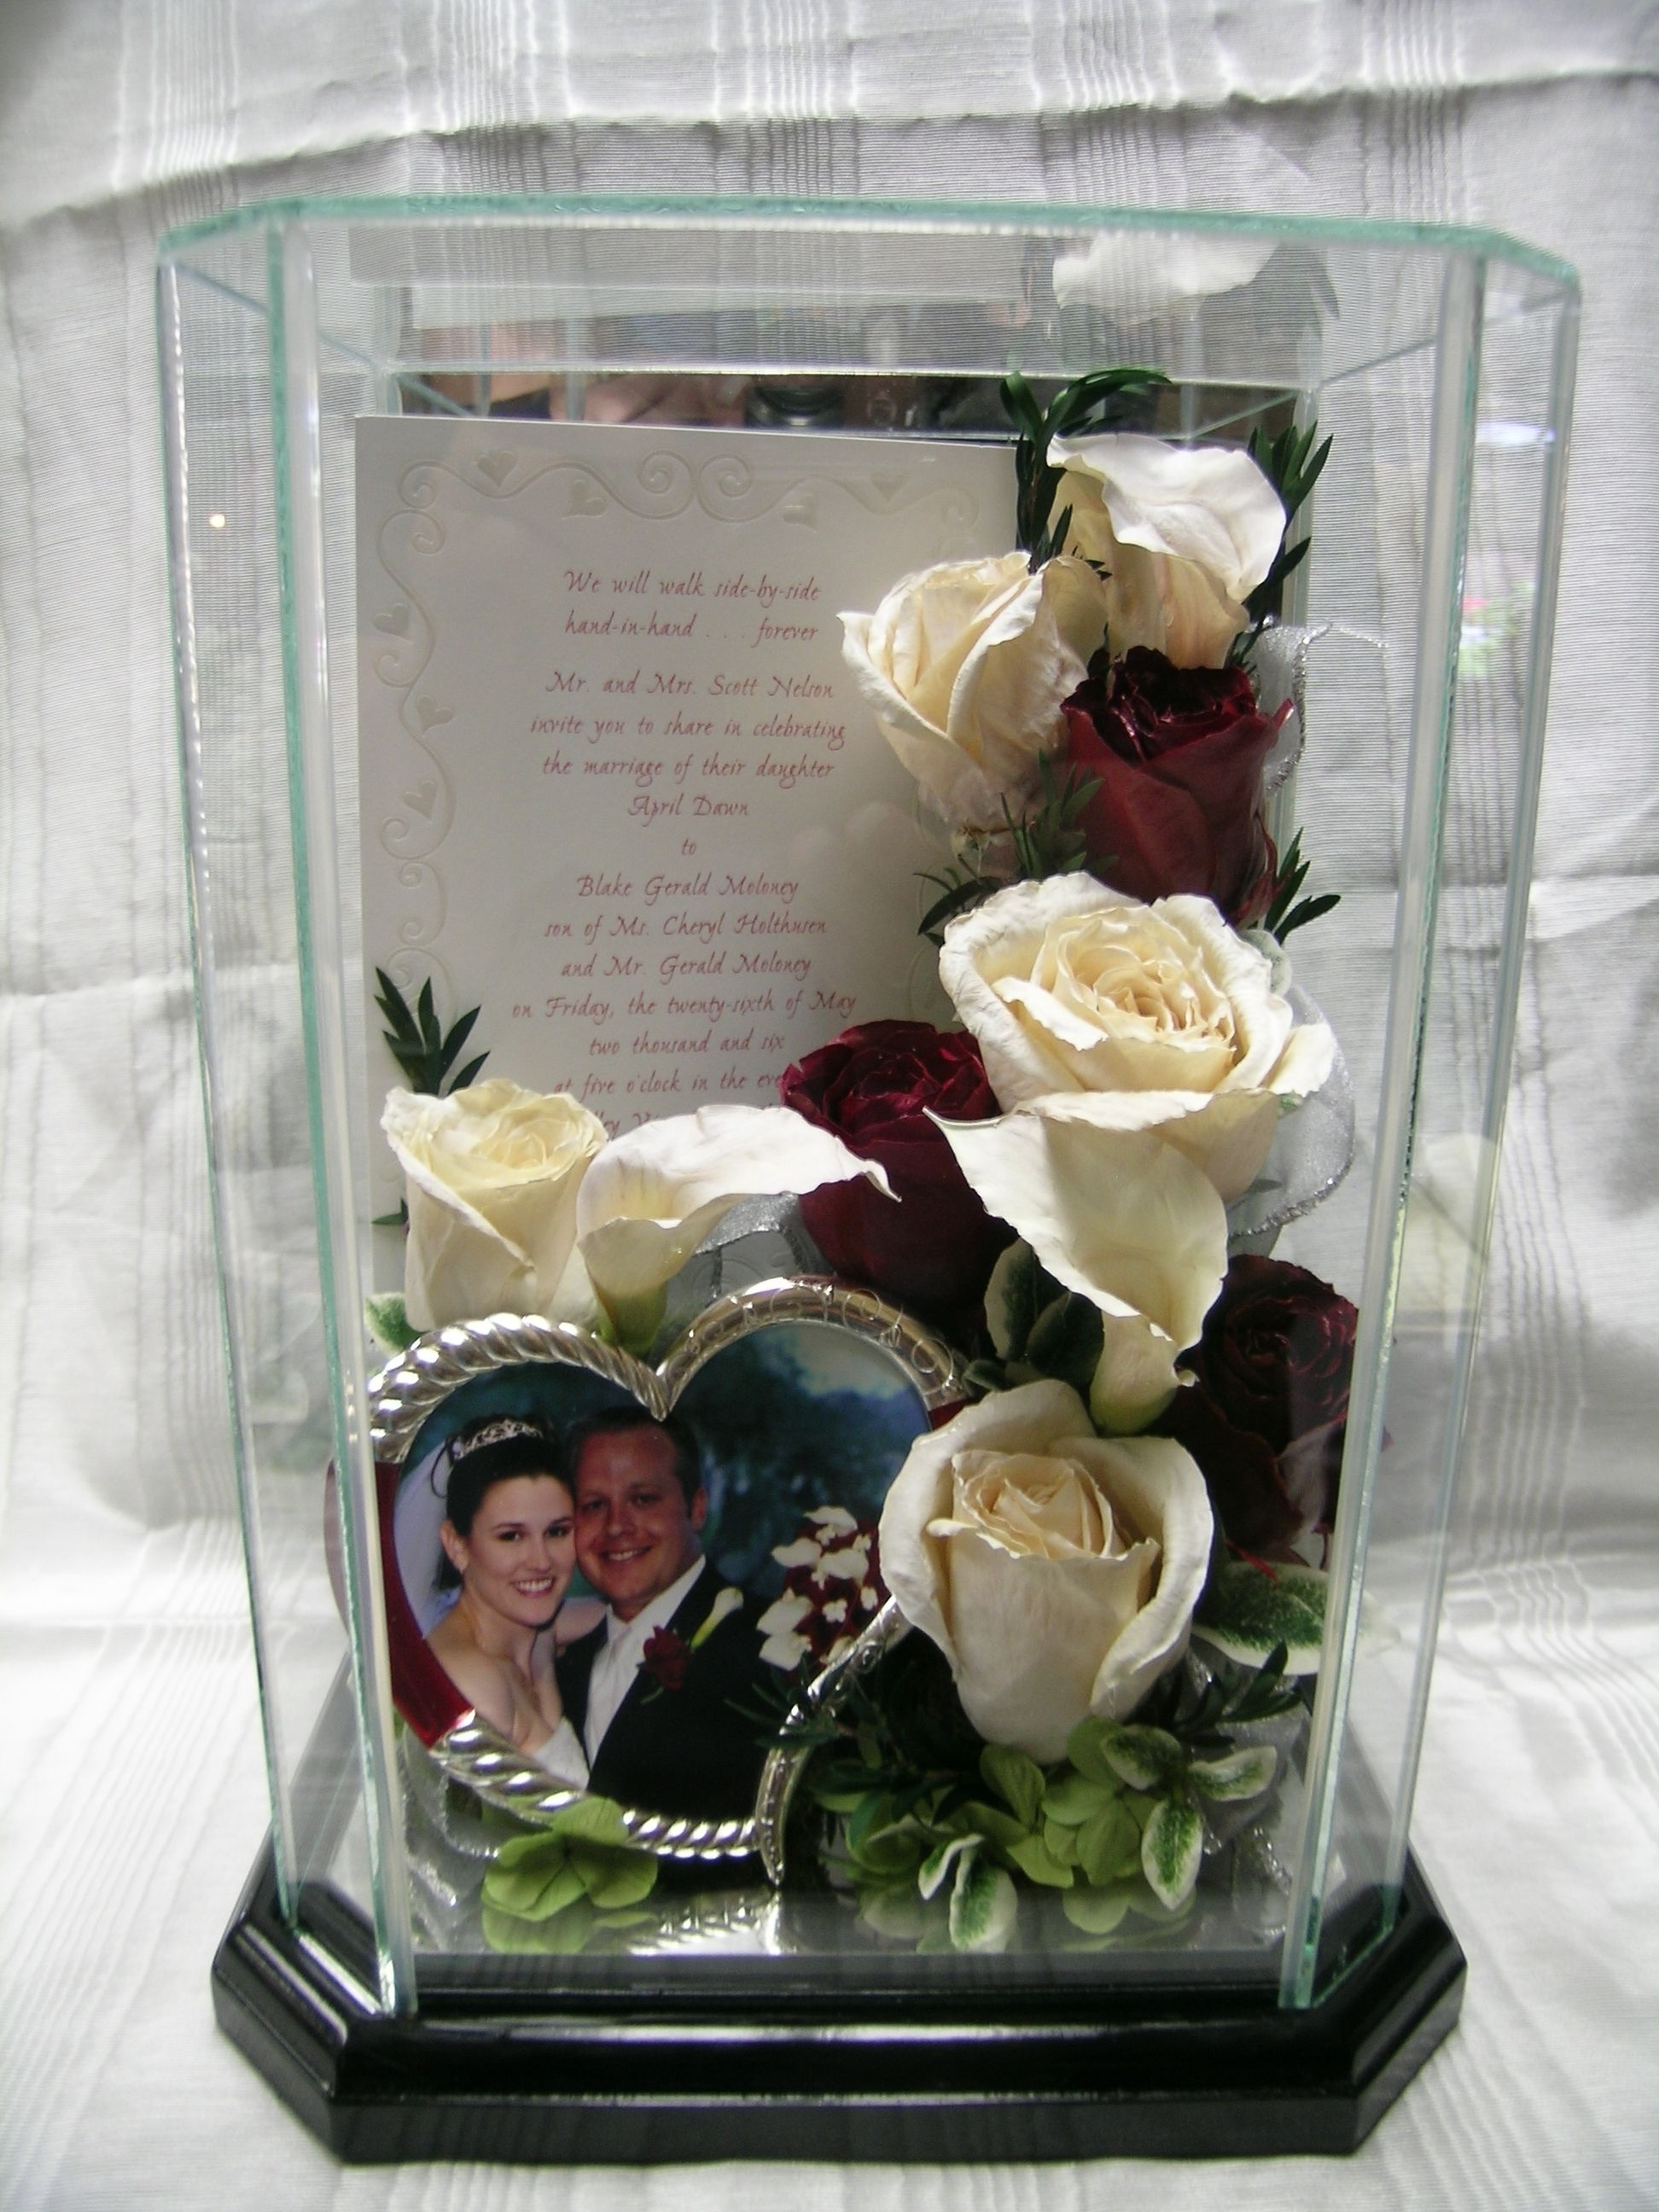 Preserved wedding flowers in a glass box.